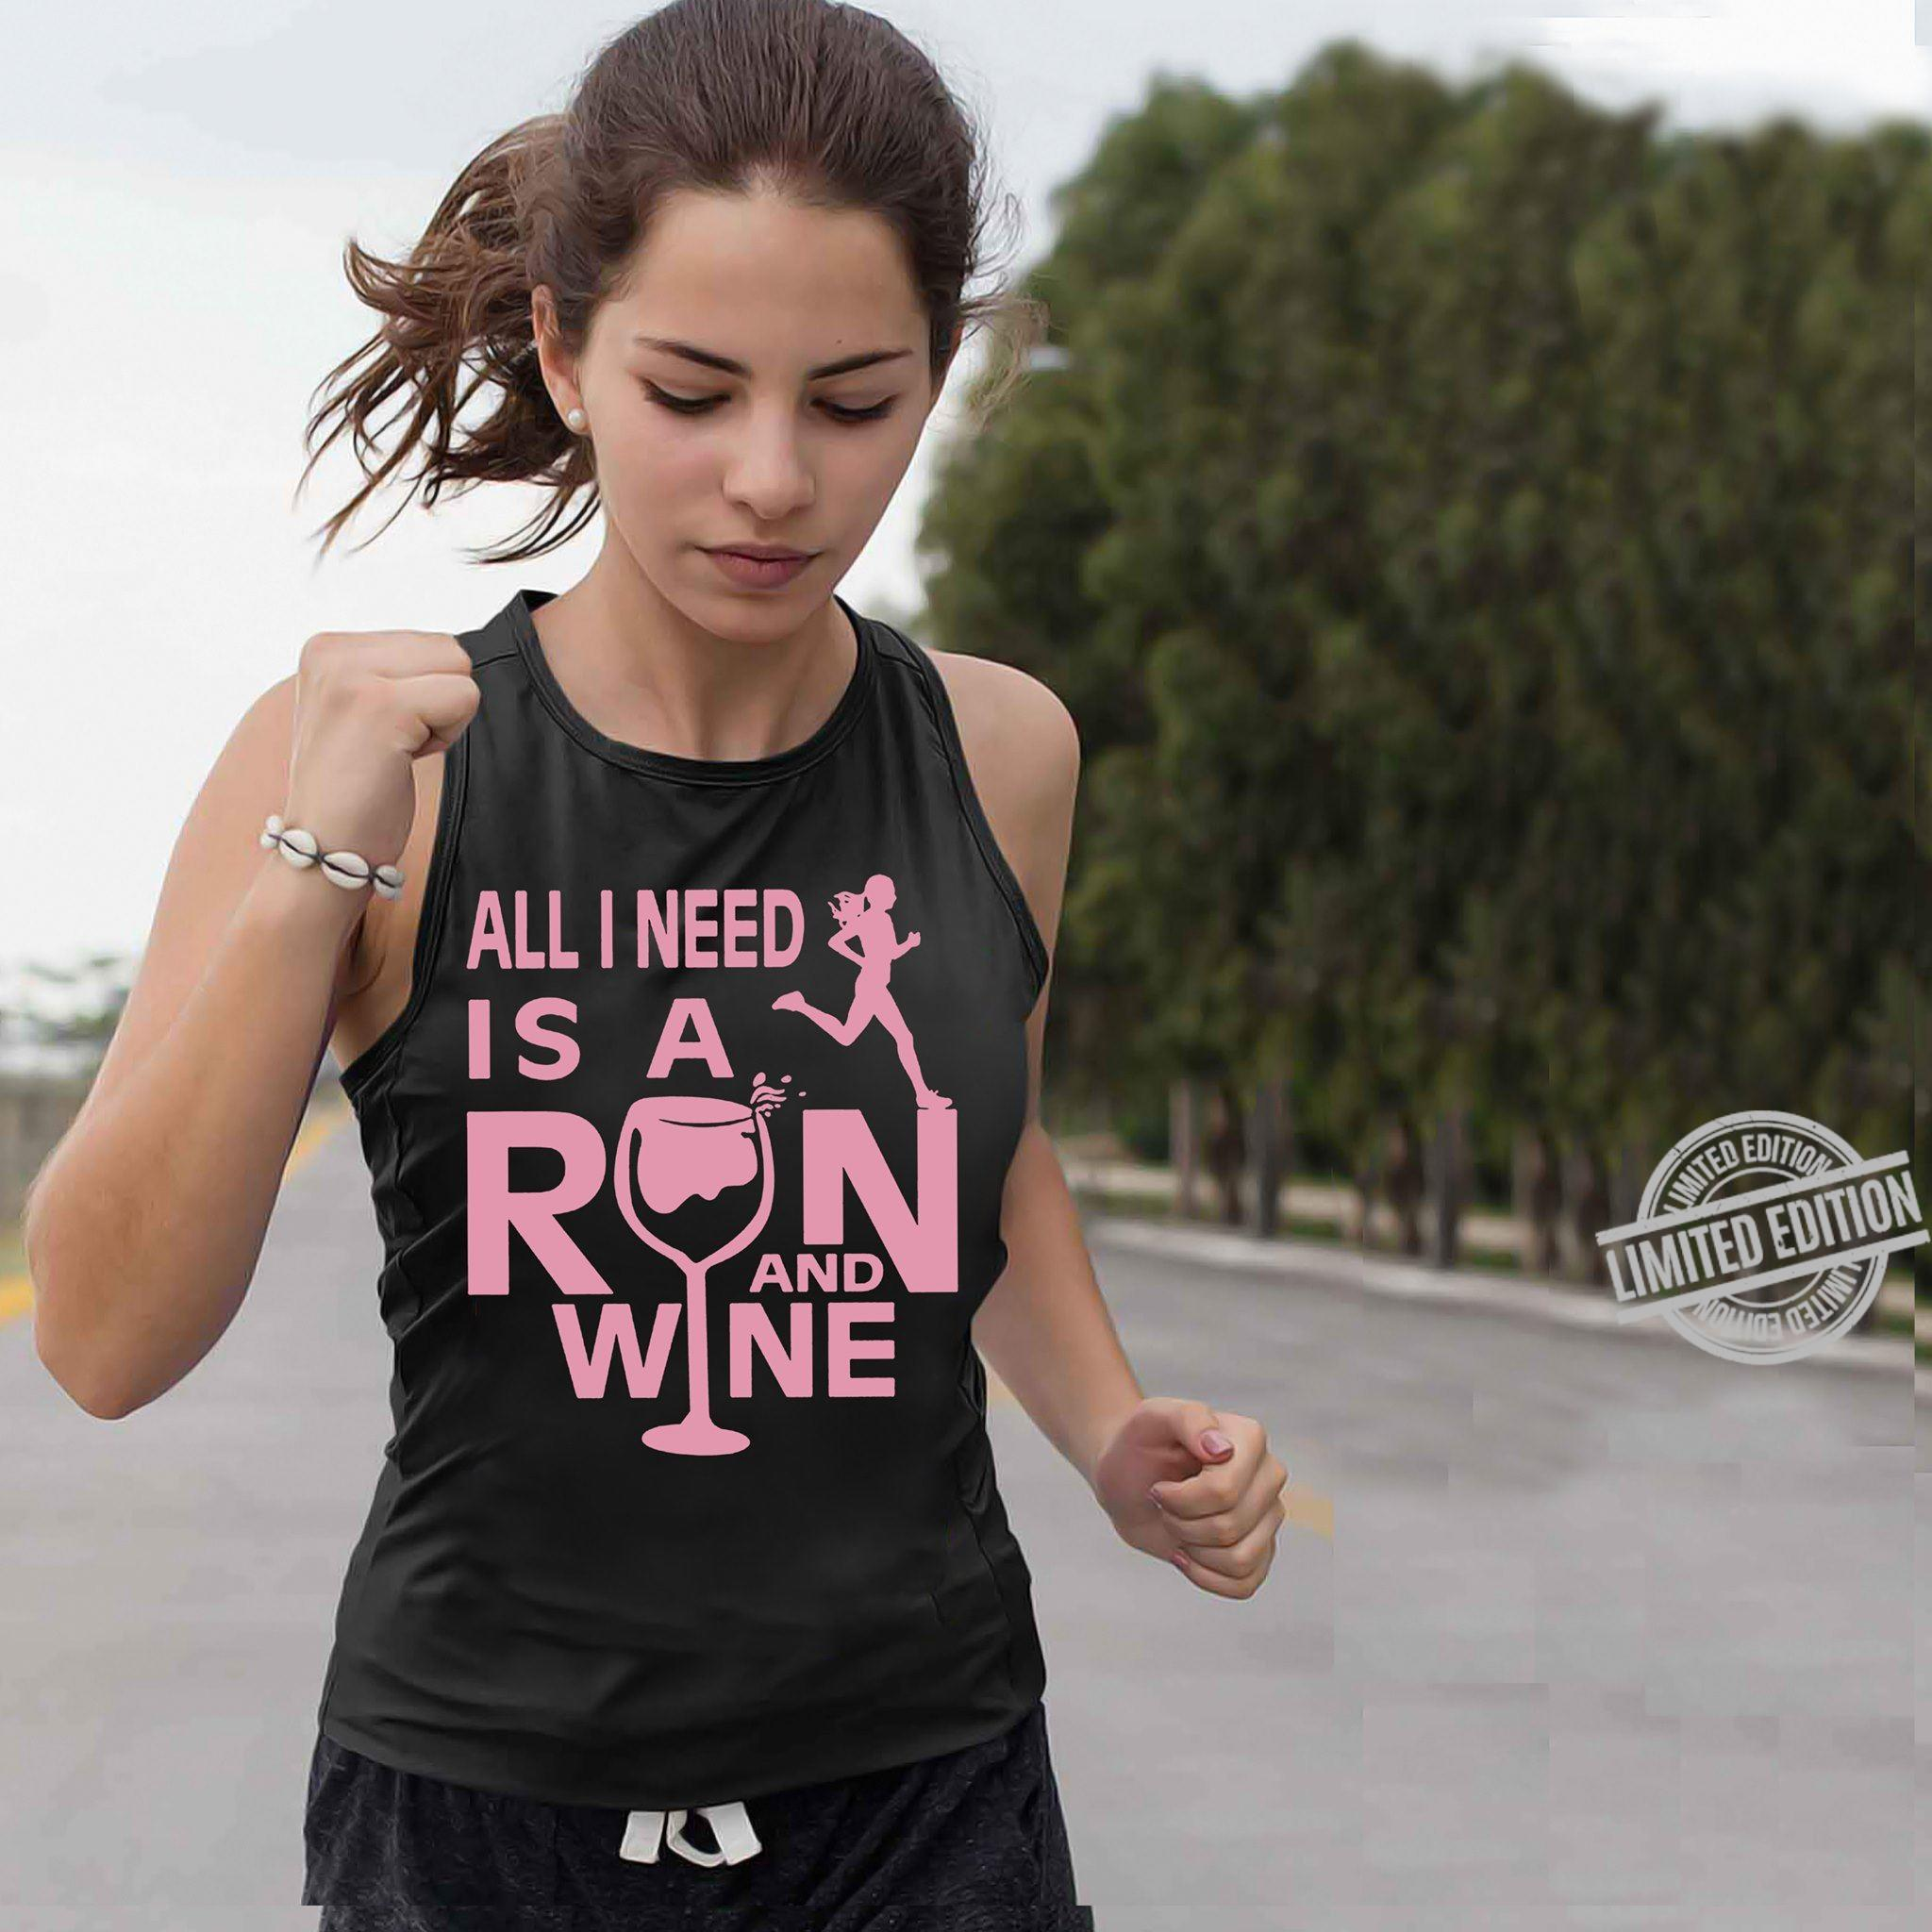 All I Need Is A Run And Wine Shirt